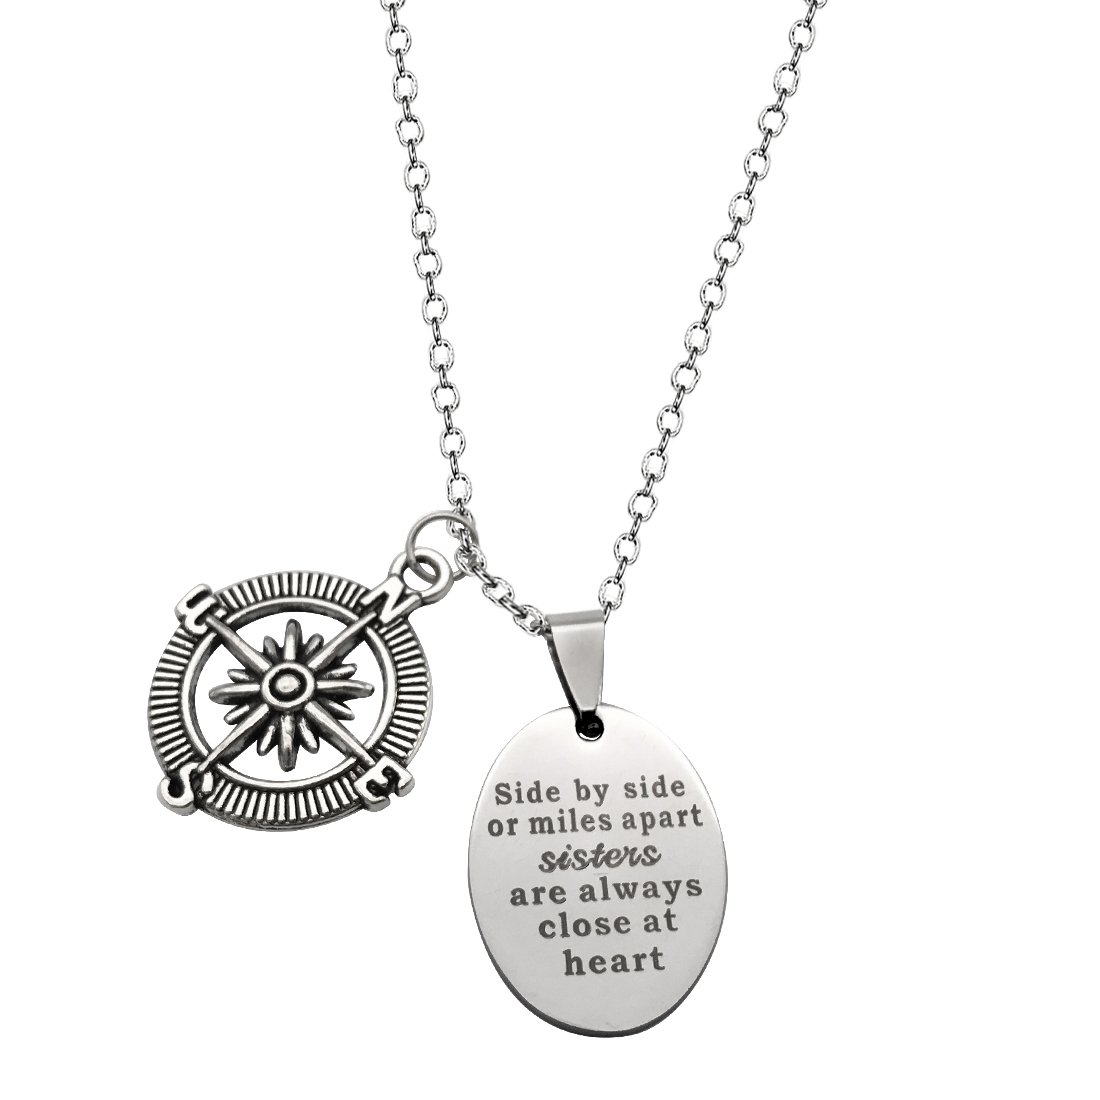 JJTZX Side by Side or Miles Apart Bracelet&Necklace Best Friends Charm Wire Bangle Long Distance Friendship Gifts (Side by Side Compass Necklace)